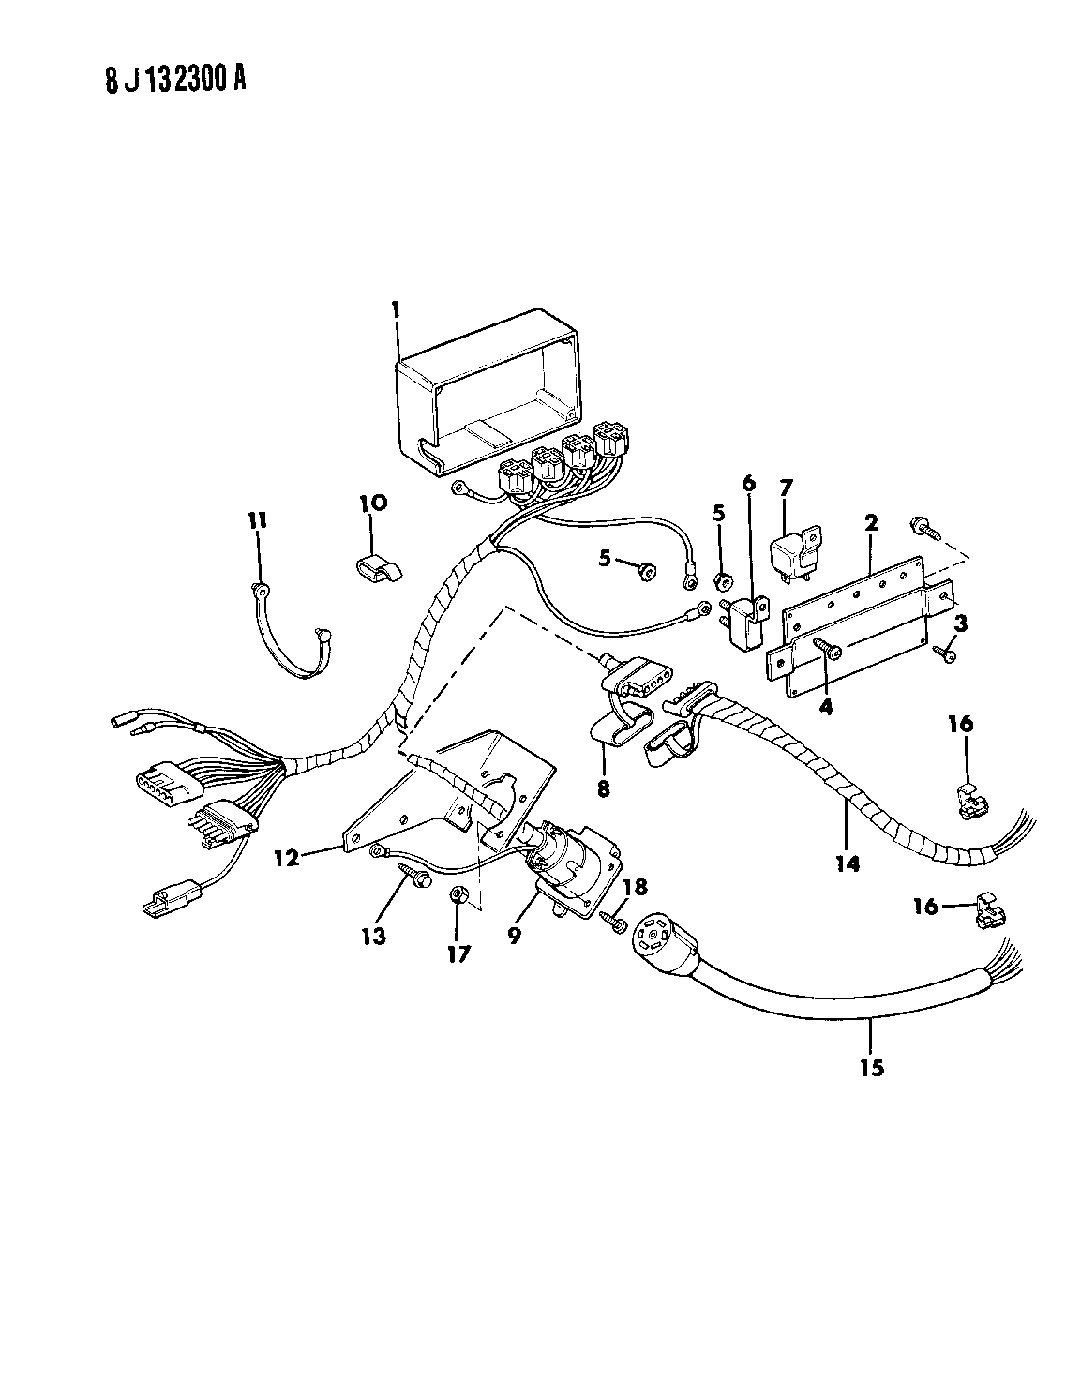 1988 Jeep Grand Wagoneer Wiring